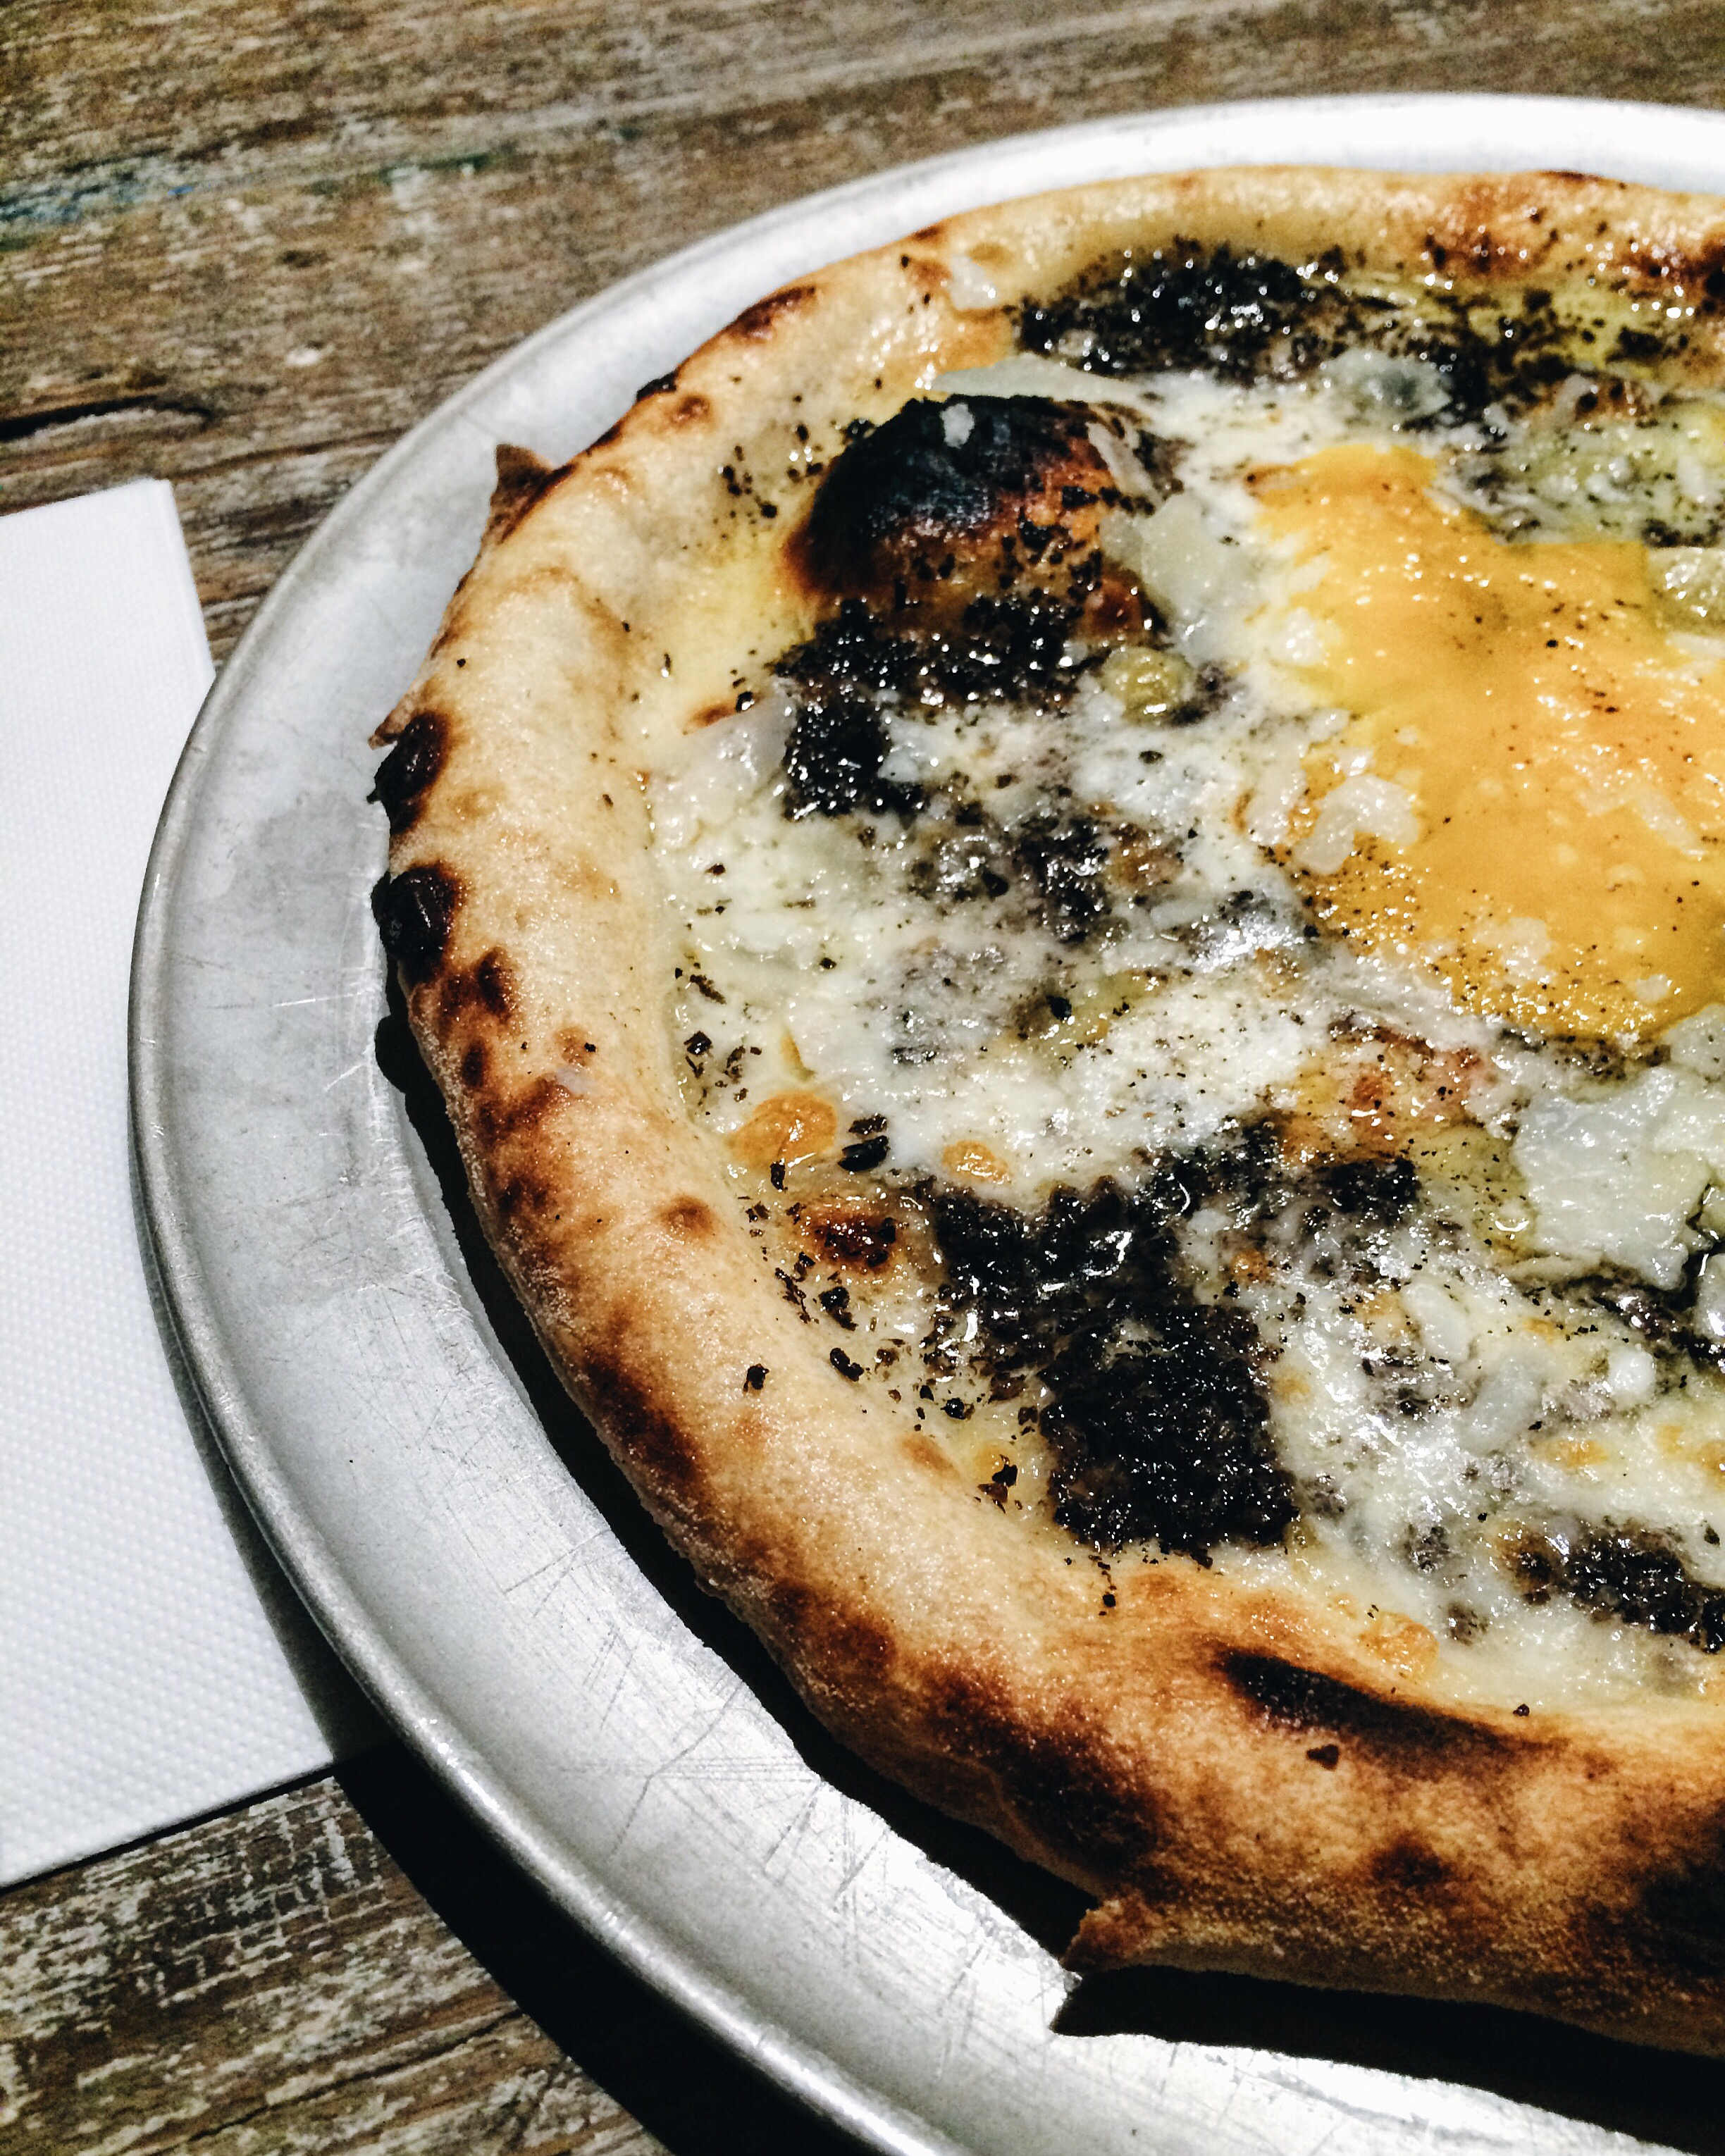 Egg and truffle pizza at Parking Pizza, Barcelona